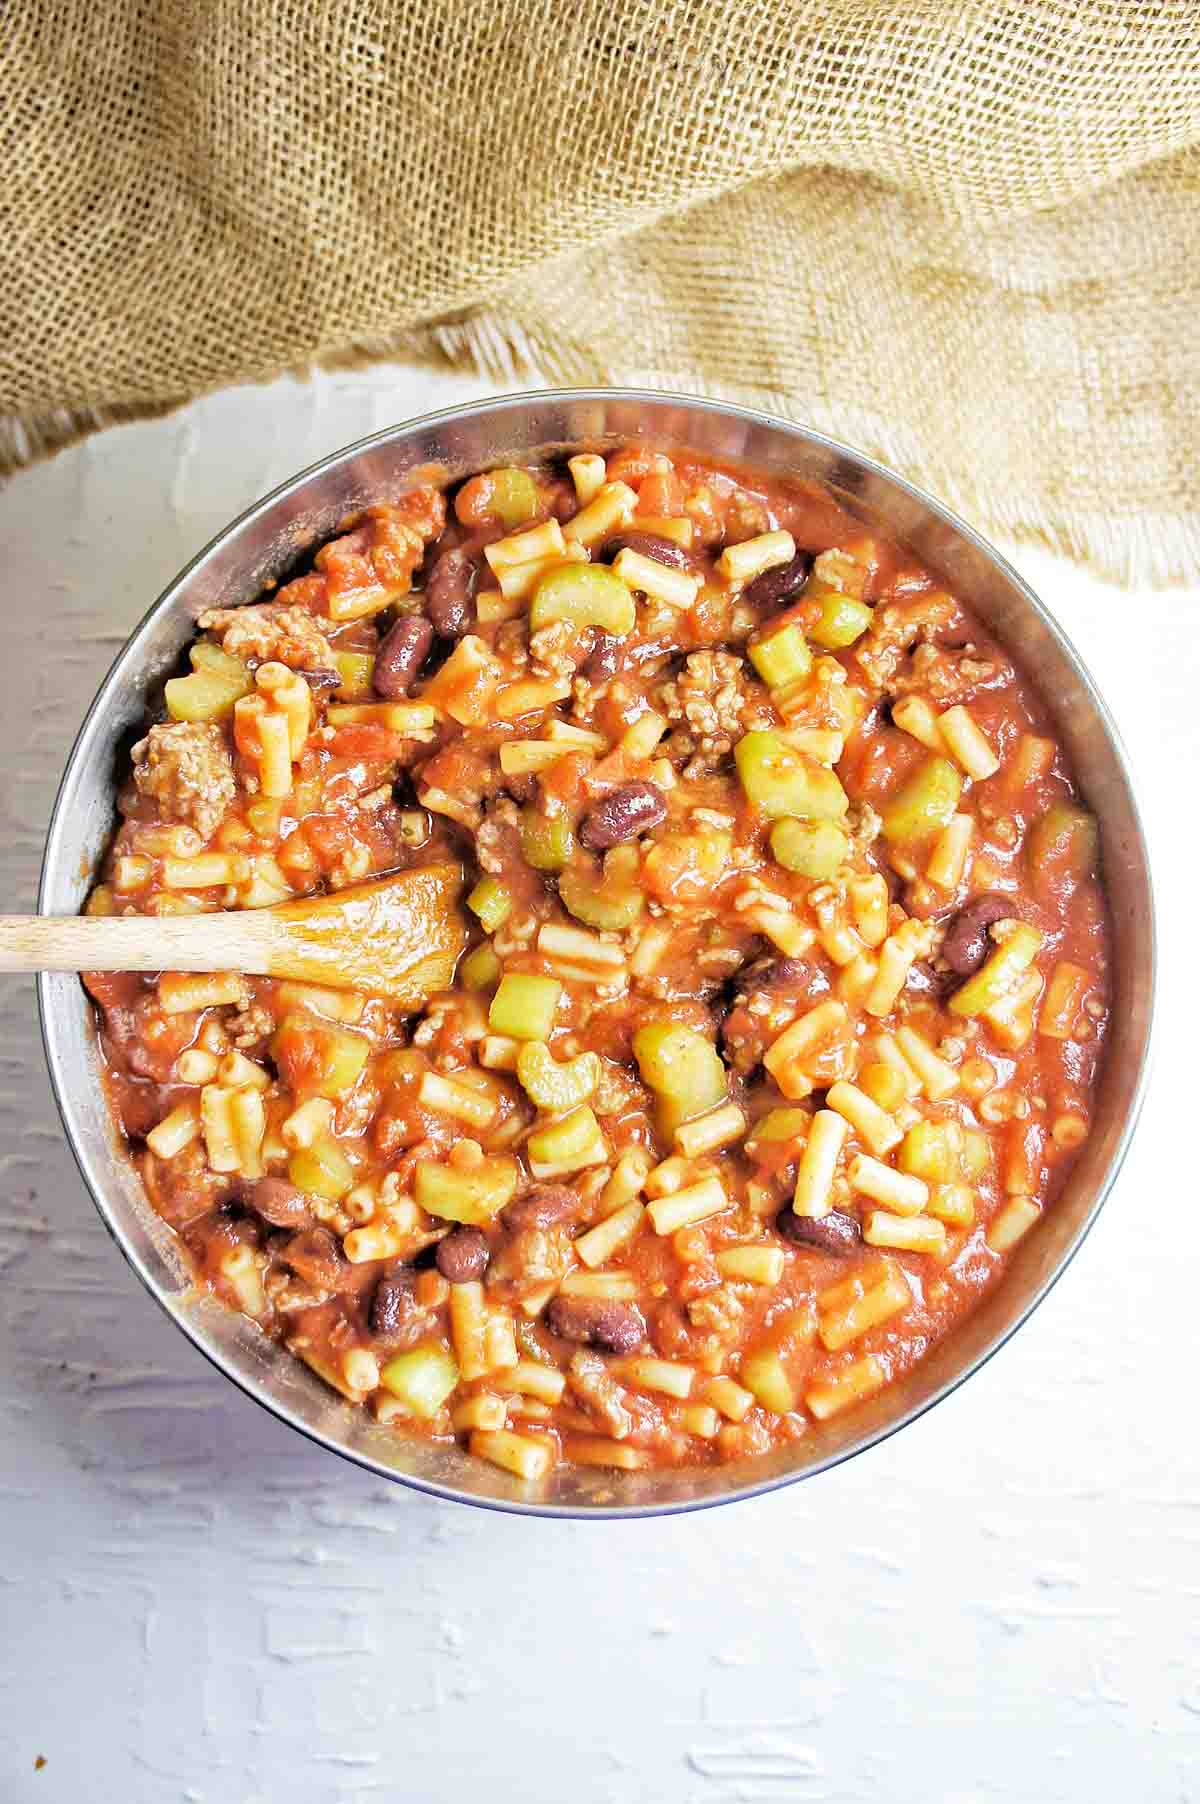 Beef beans macaroni with tomato sauce in a silver bowl